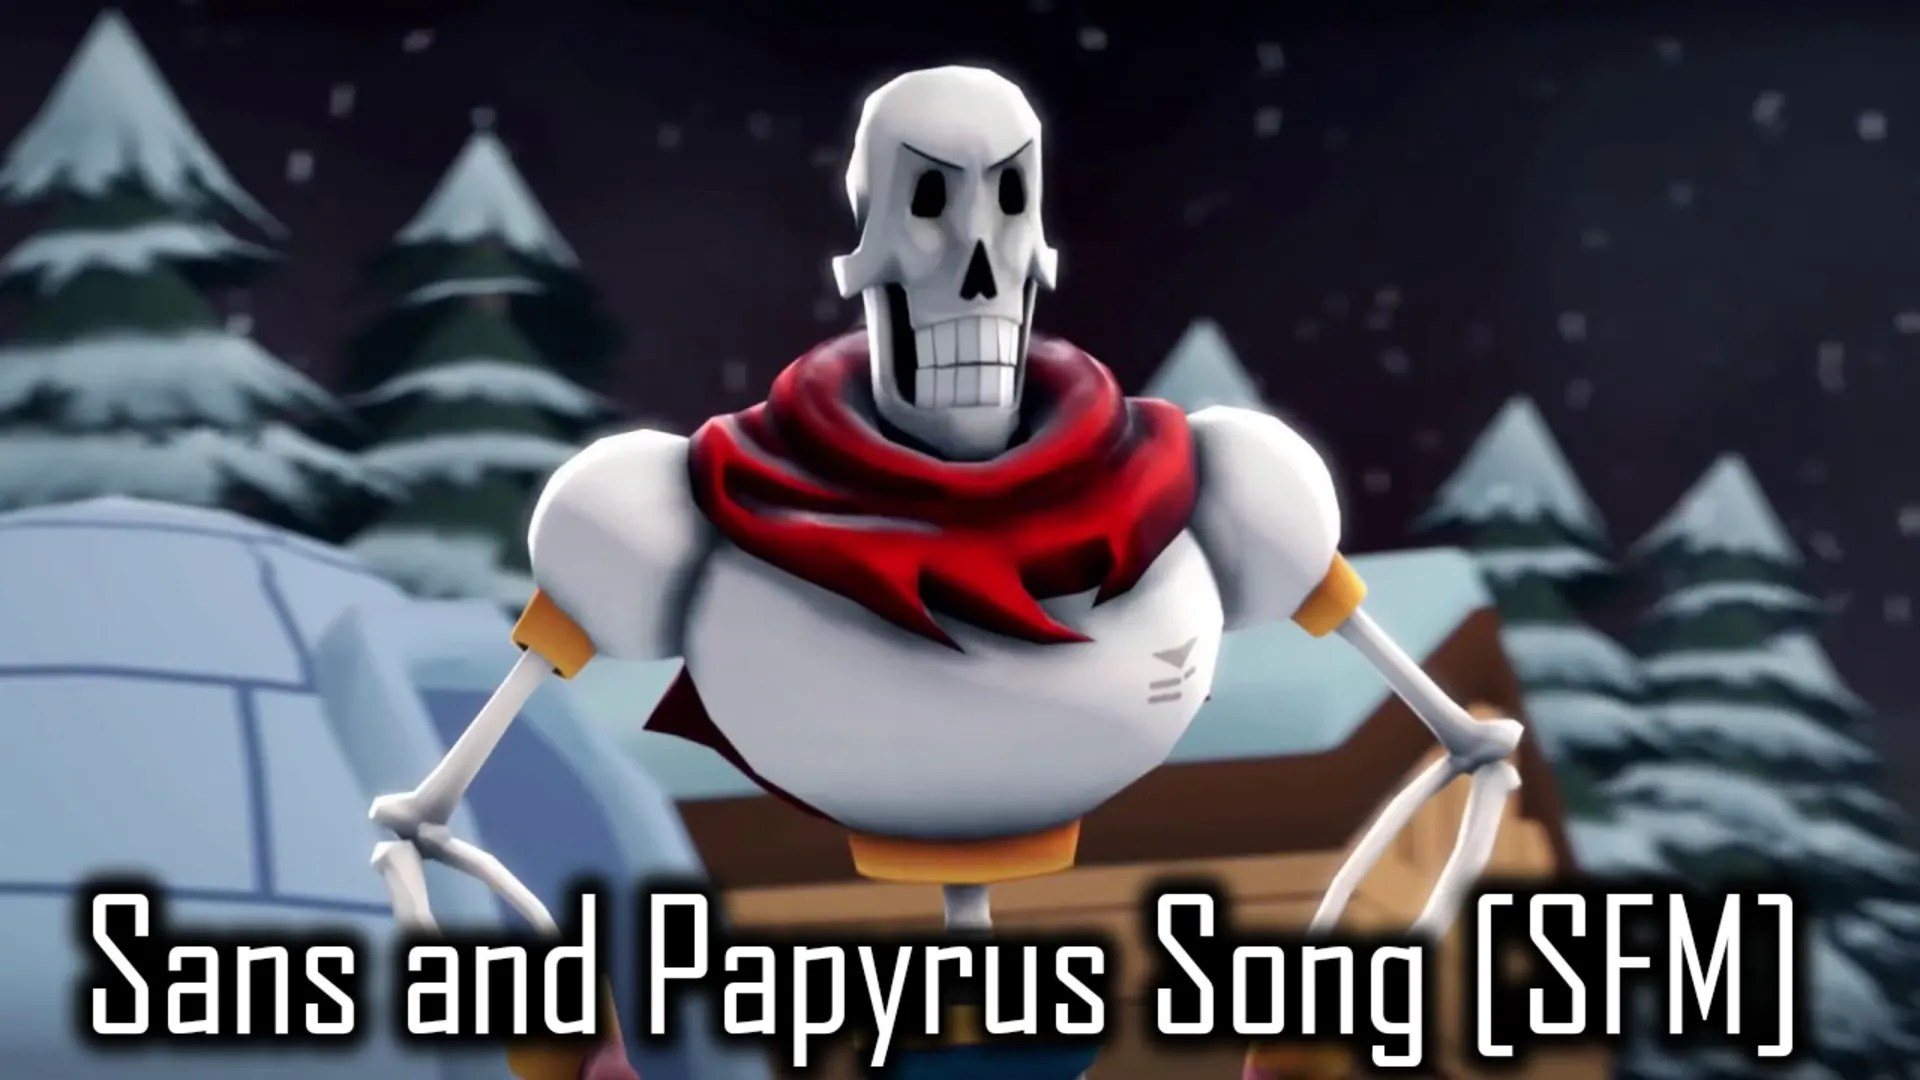 sans and papyrus song